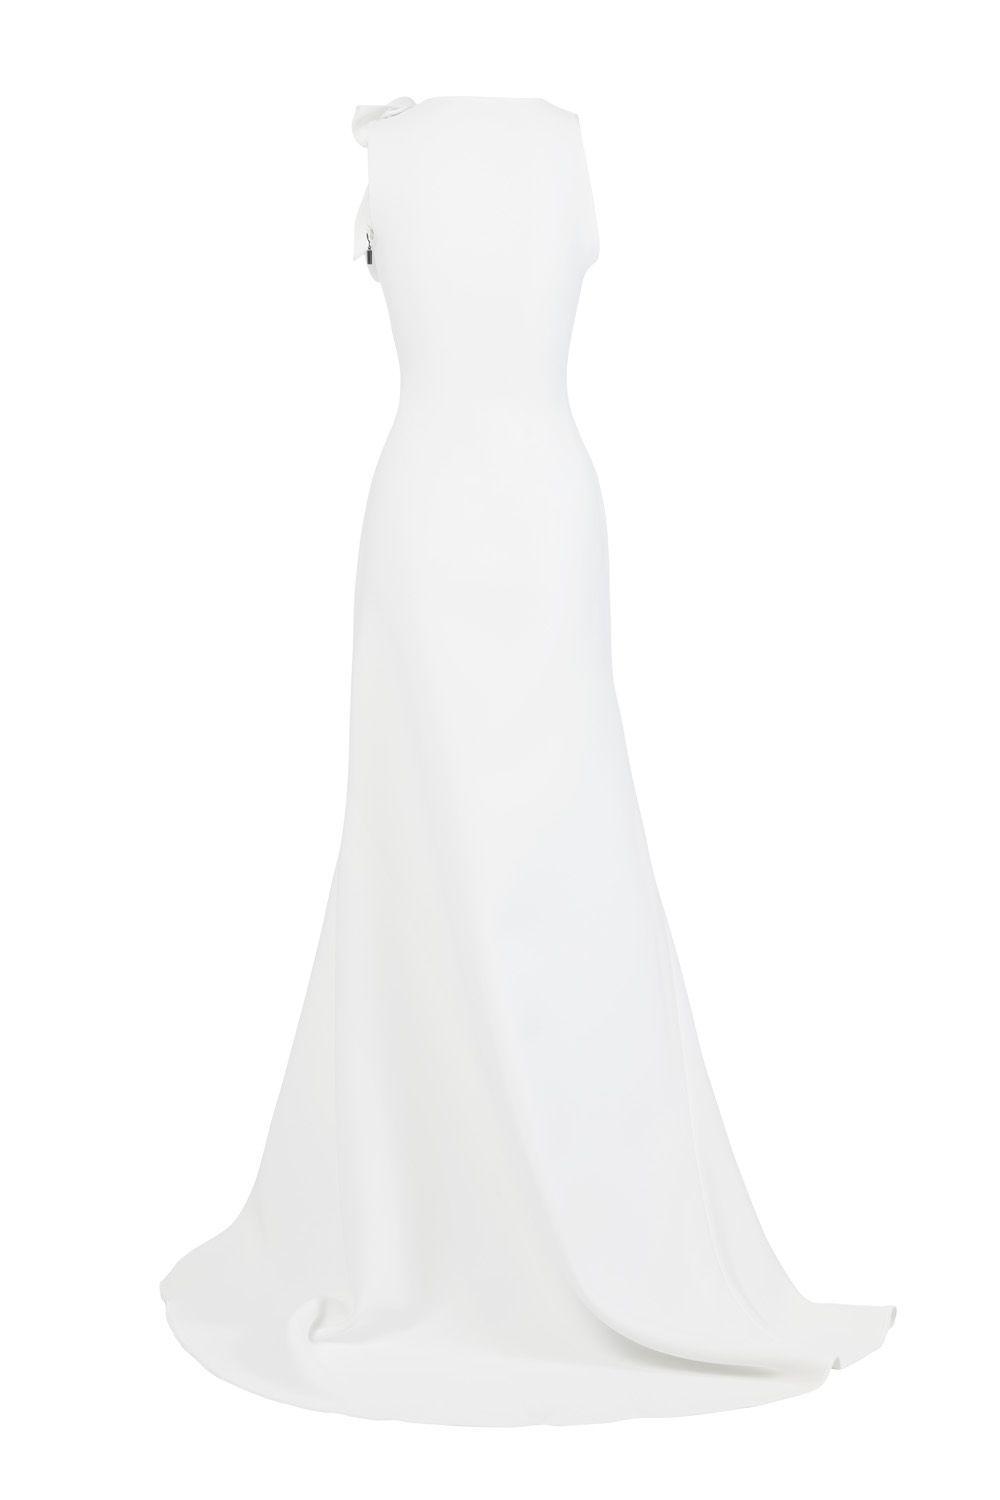 Avow Gown 9